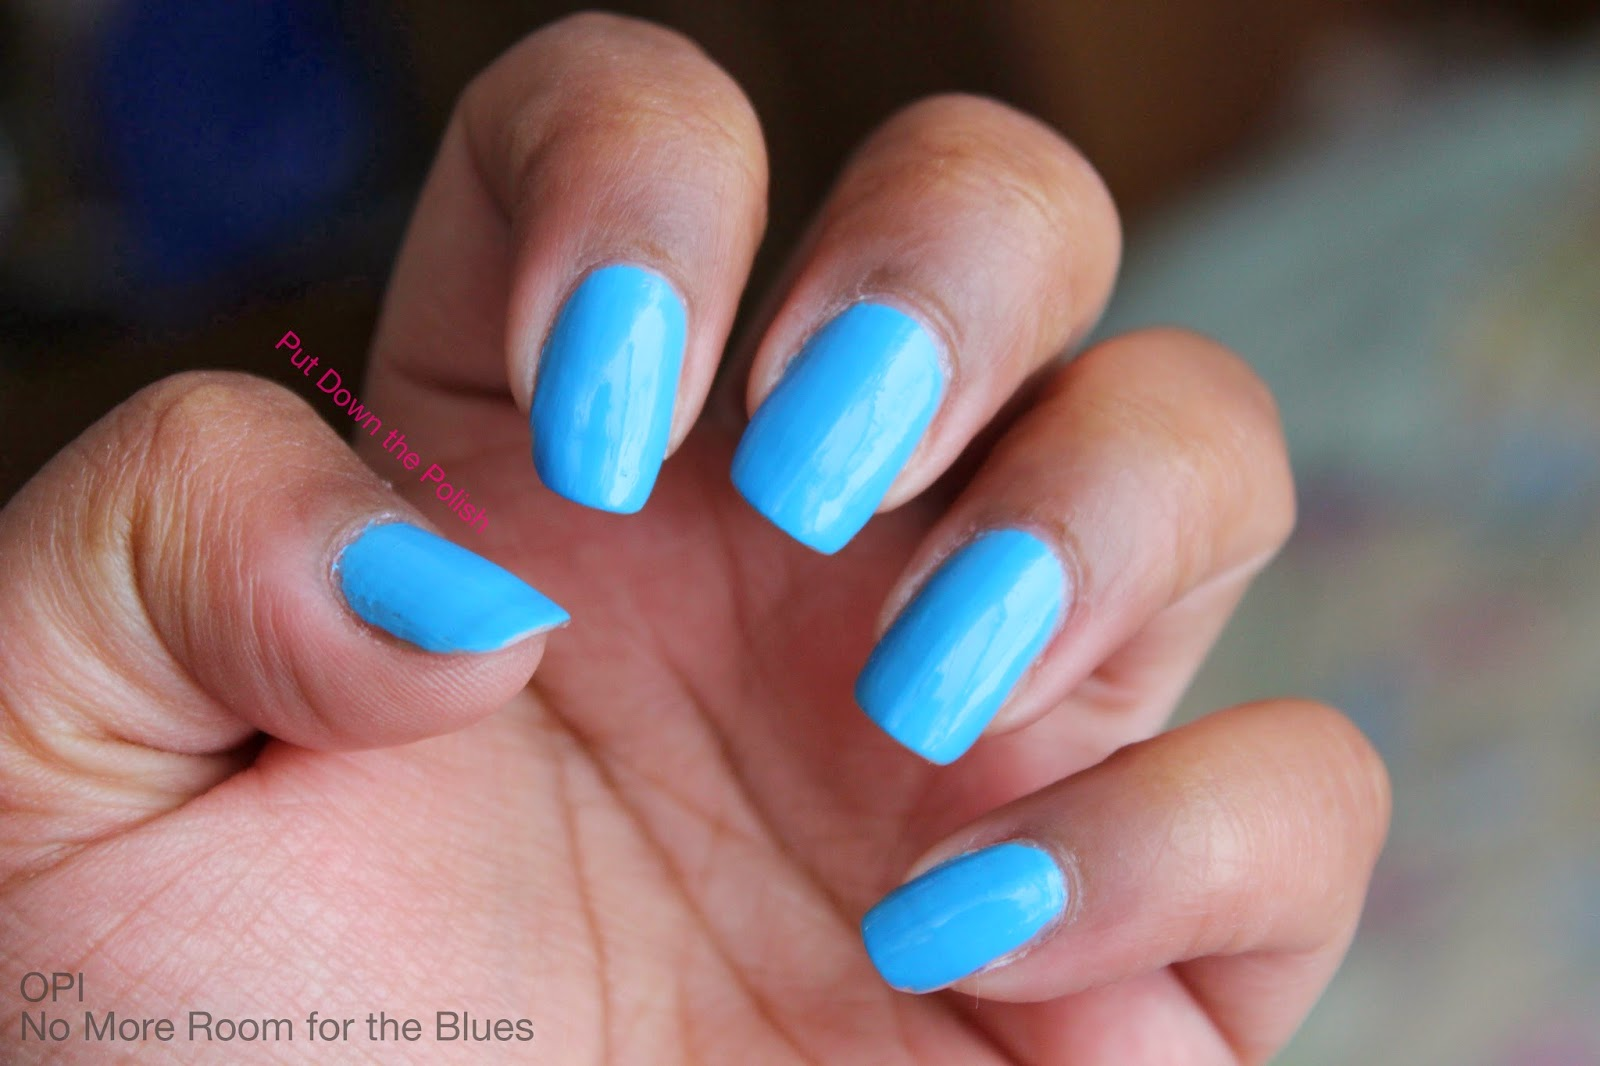 OPI No more room for the blues swatch